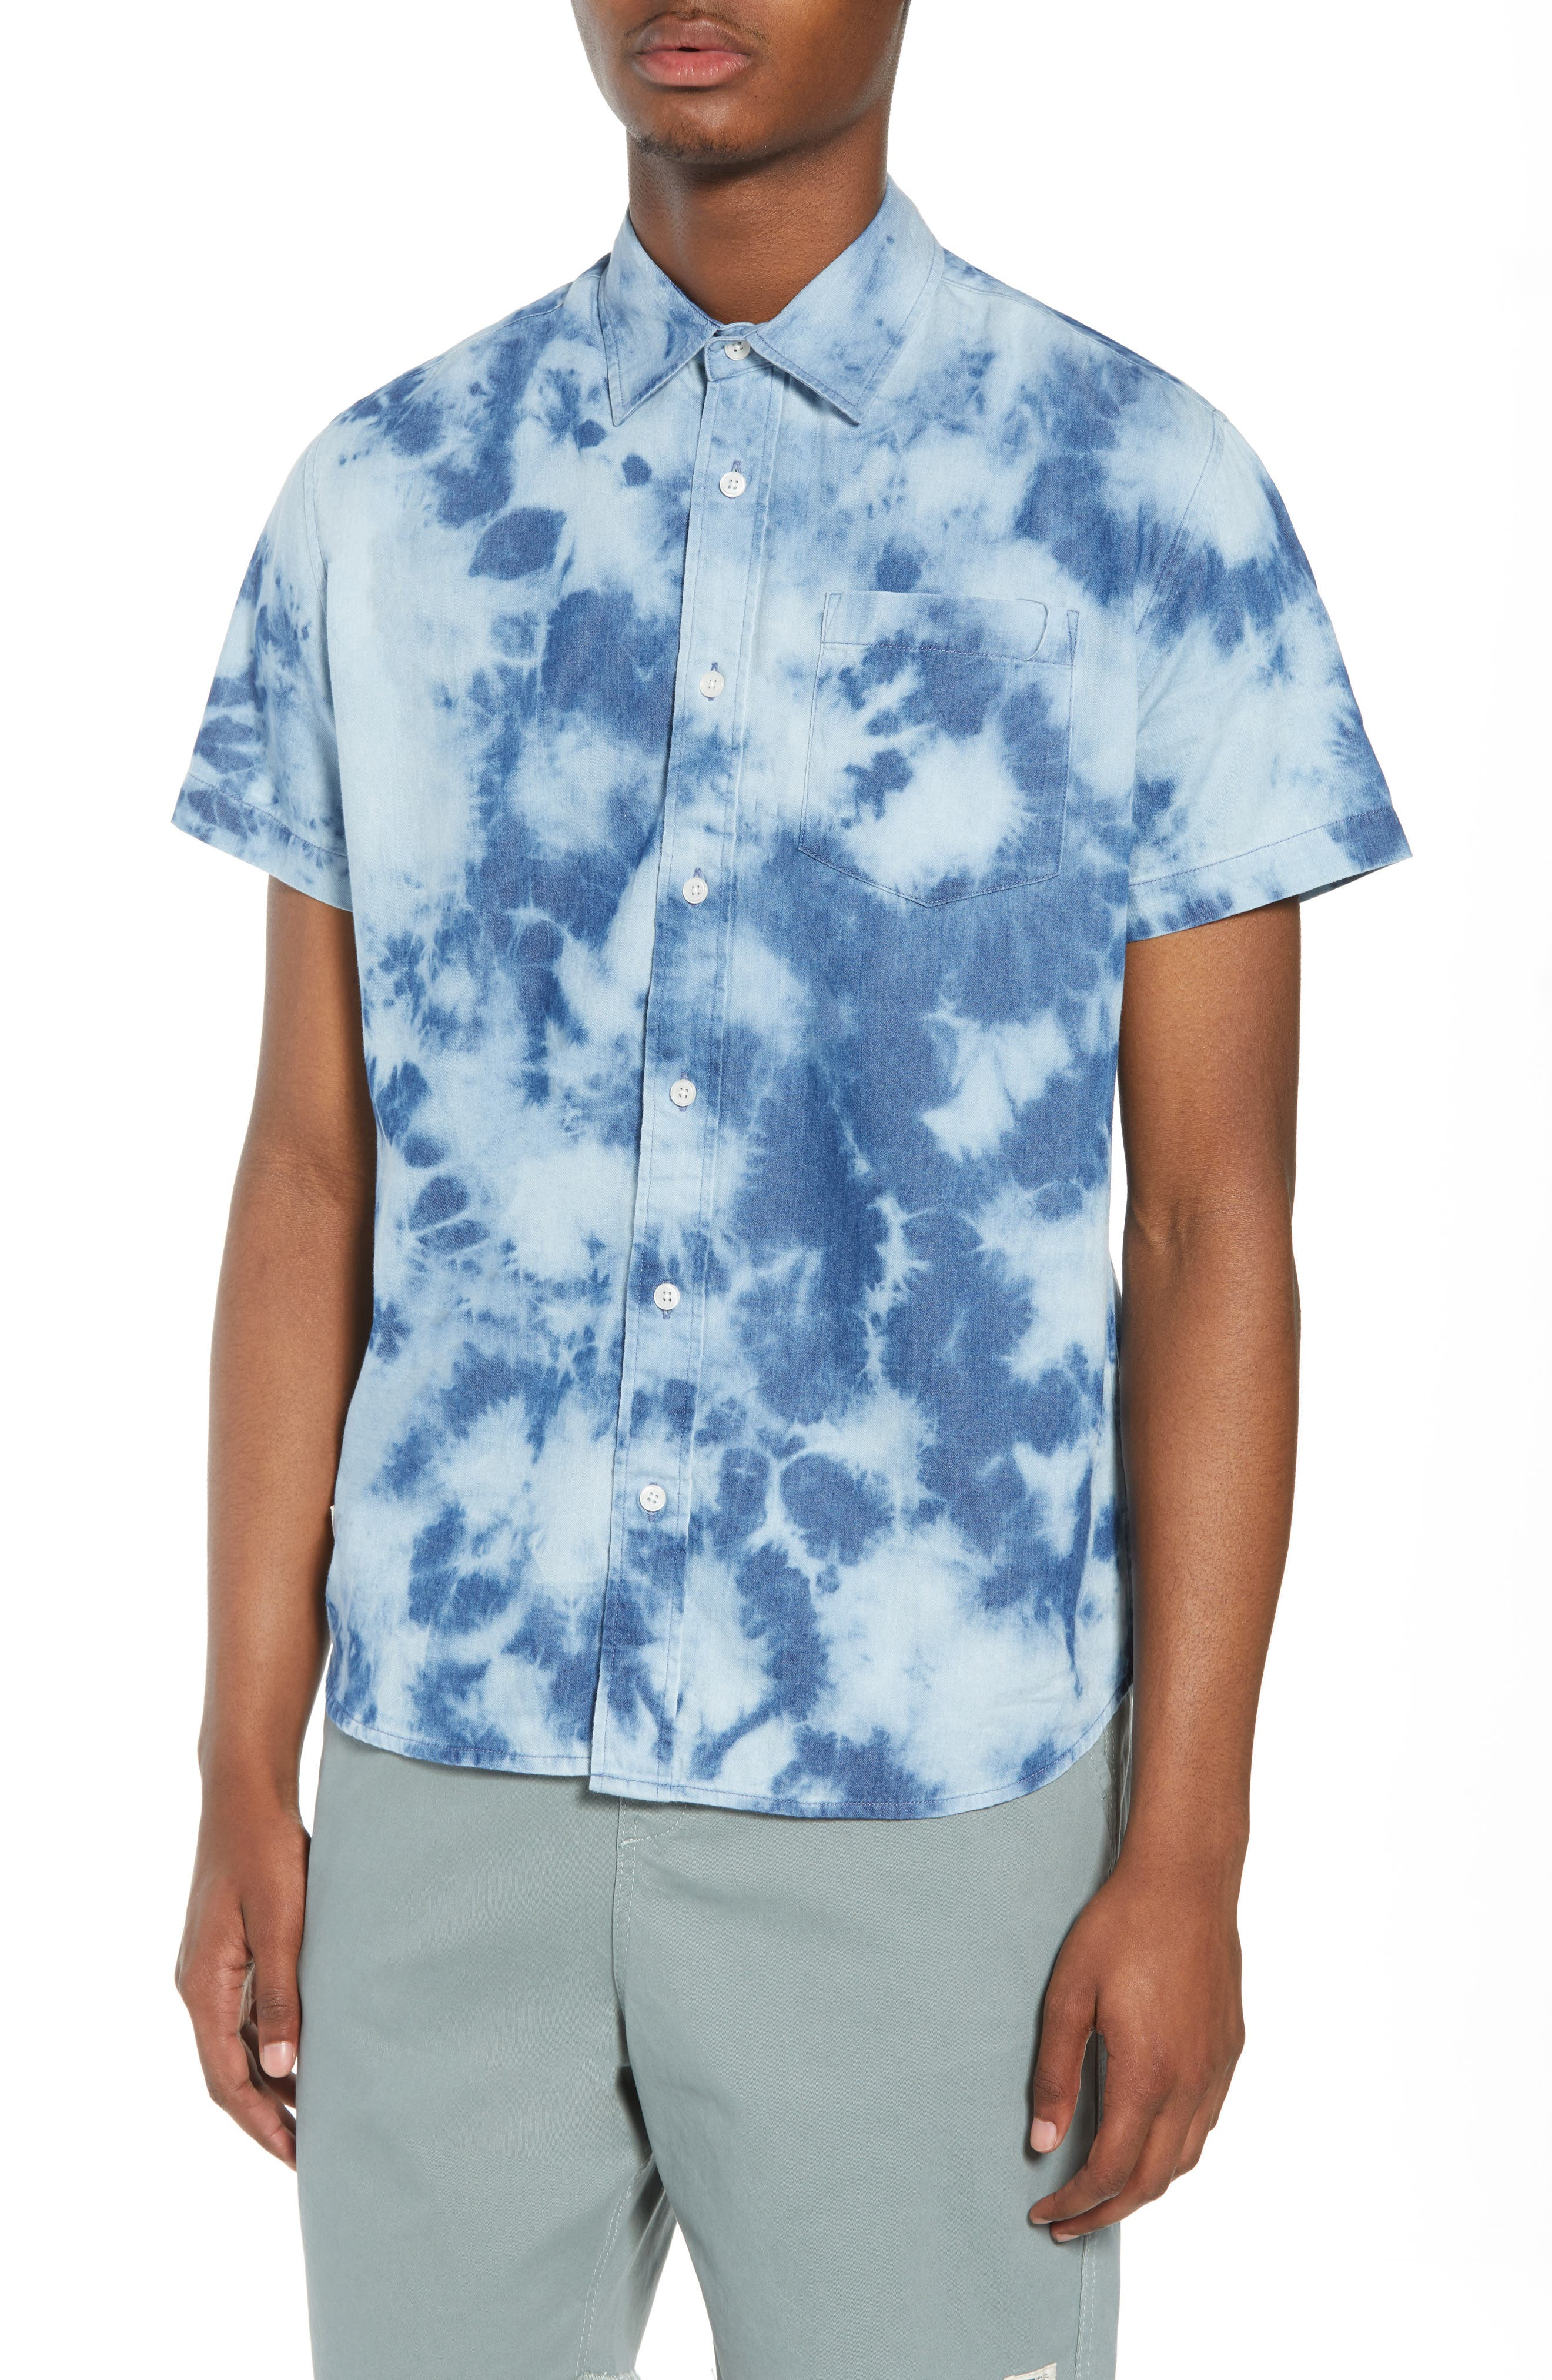 Bleacher Creature Woven Shirt,                         Main,                         color, Blue